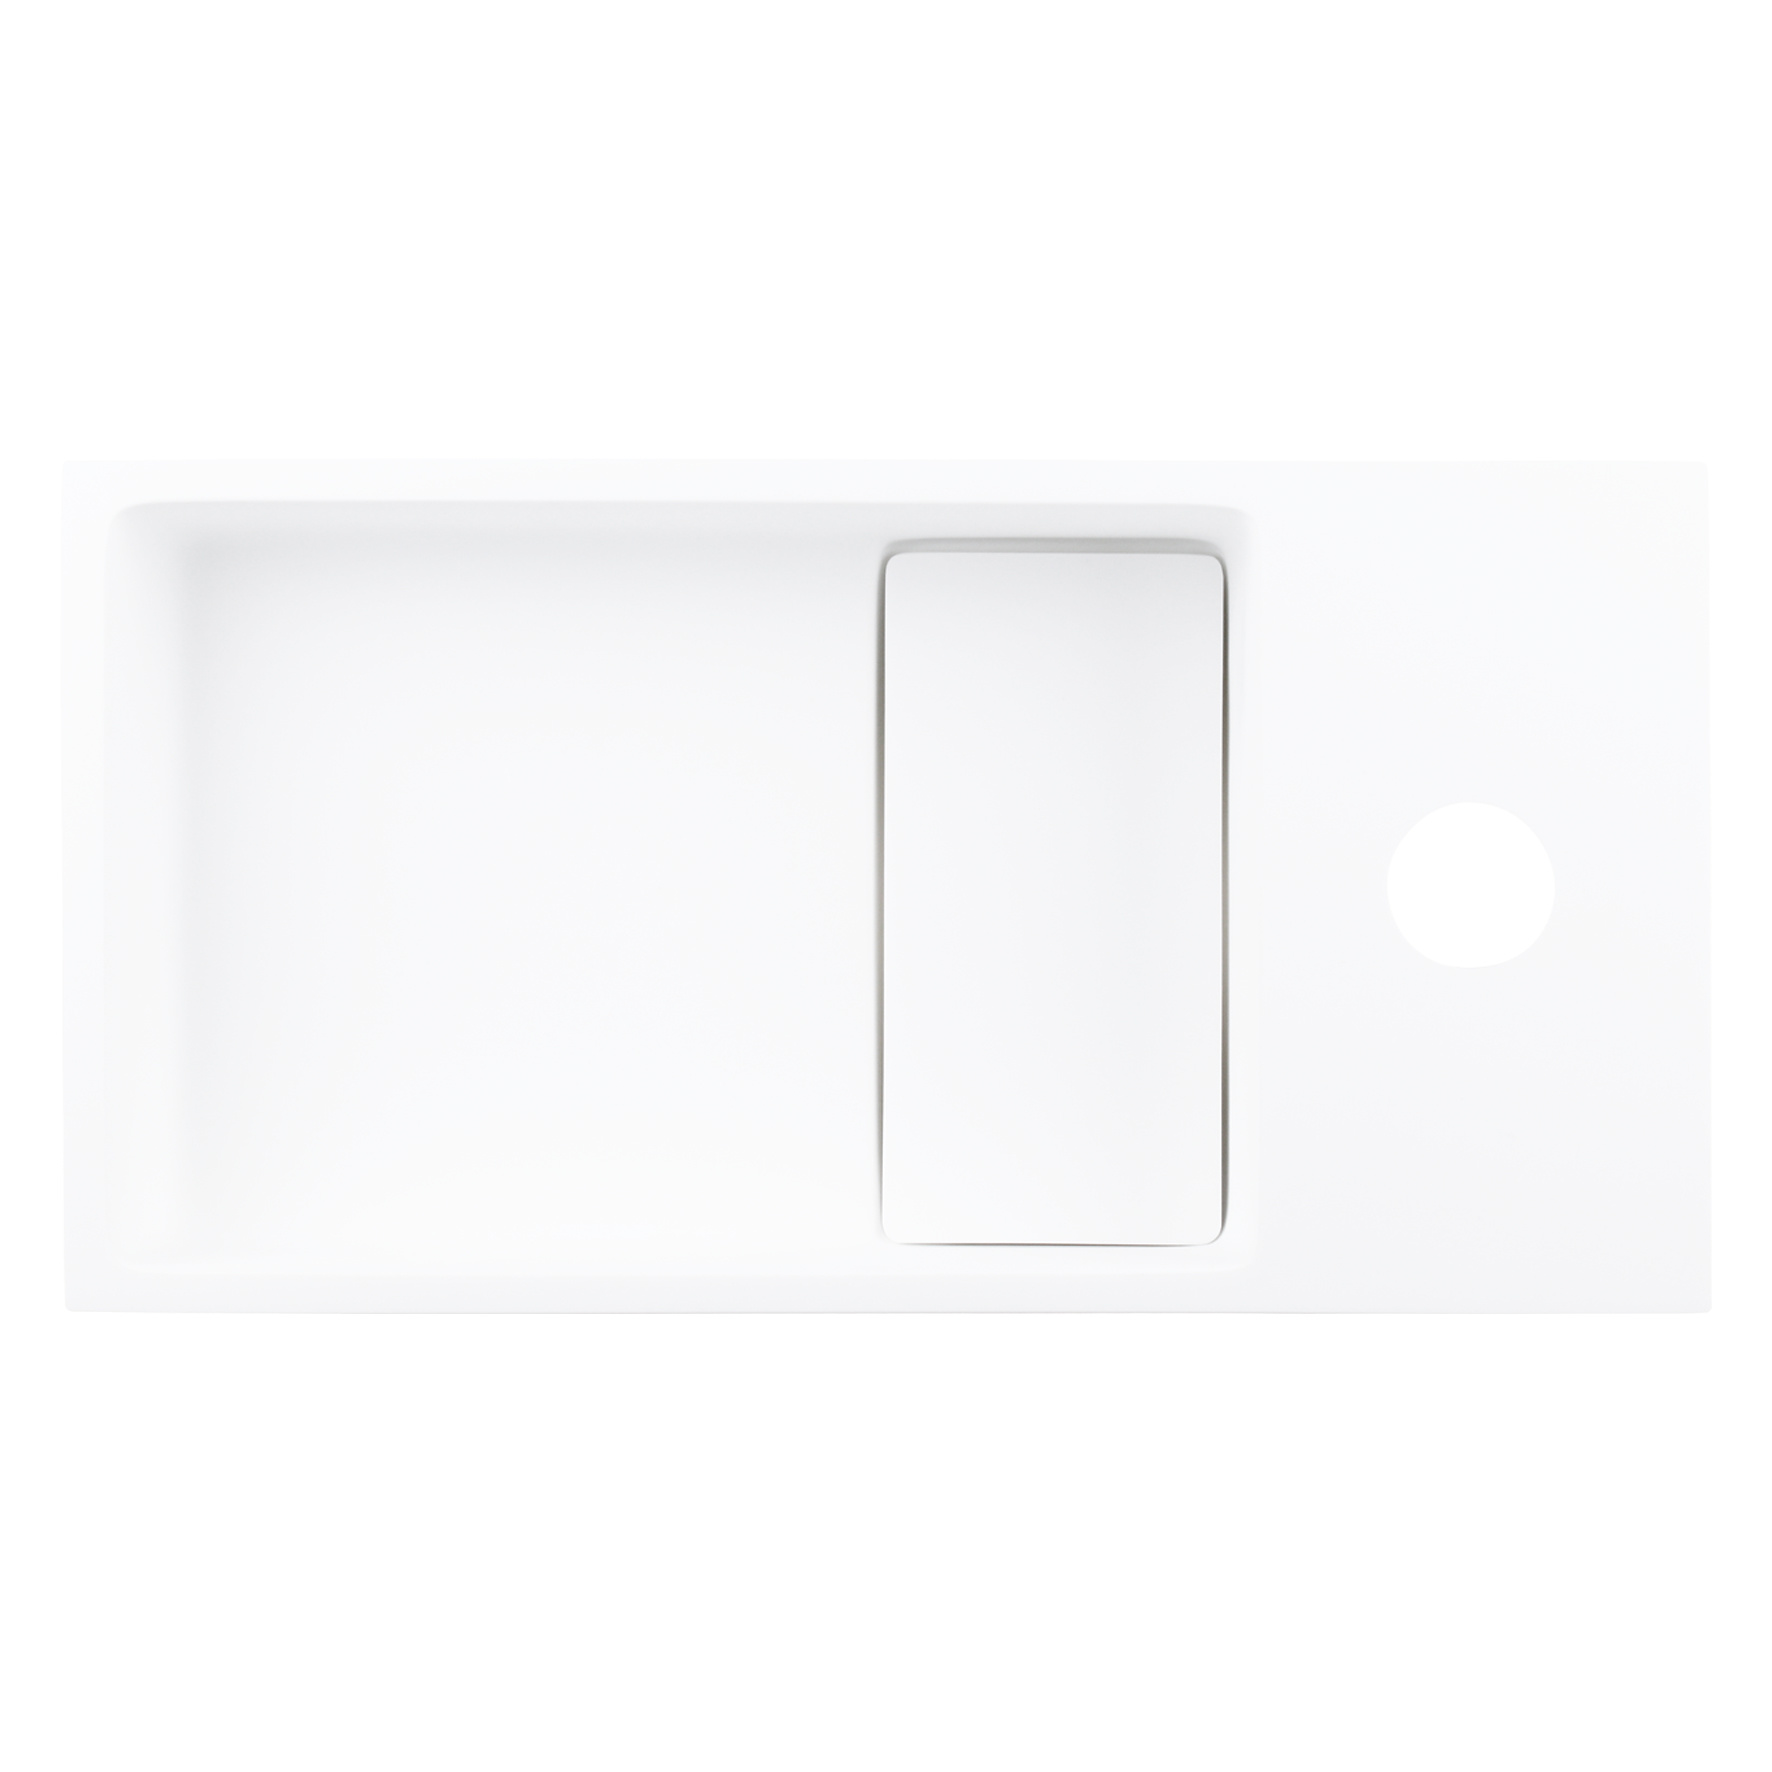 Solid fontein – Solid surface 18,5 x 36 x 9 cm-4